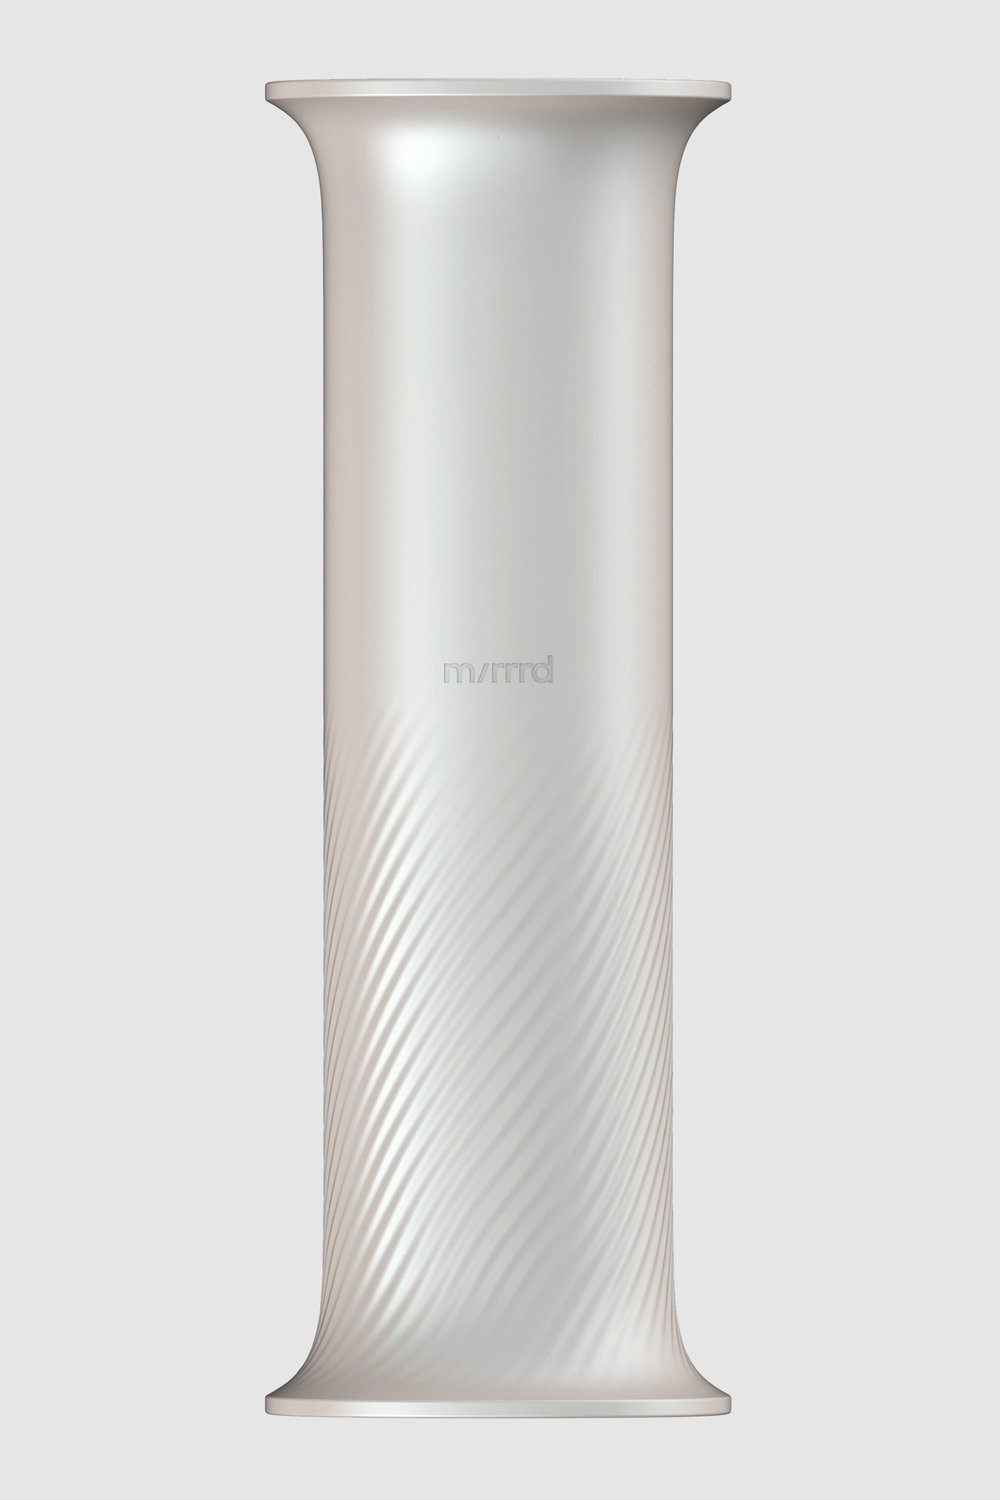 mirrrd_bottle_02-front.jpg